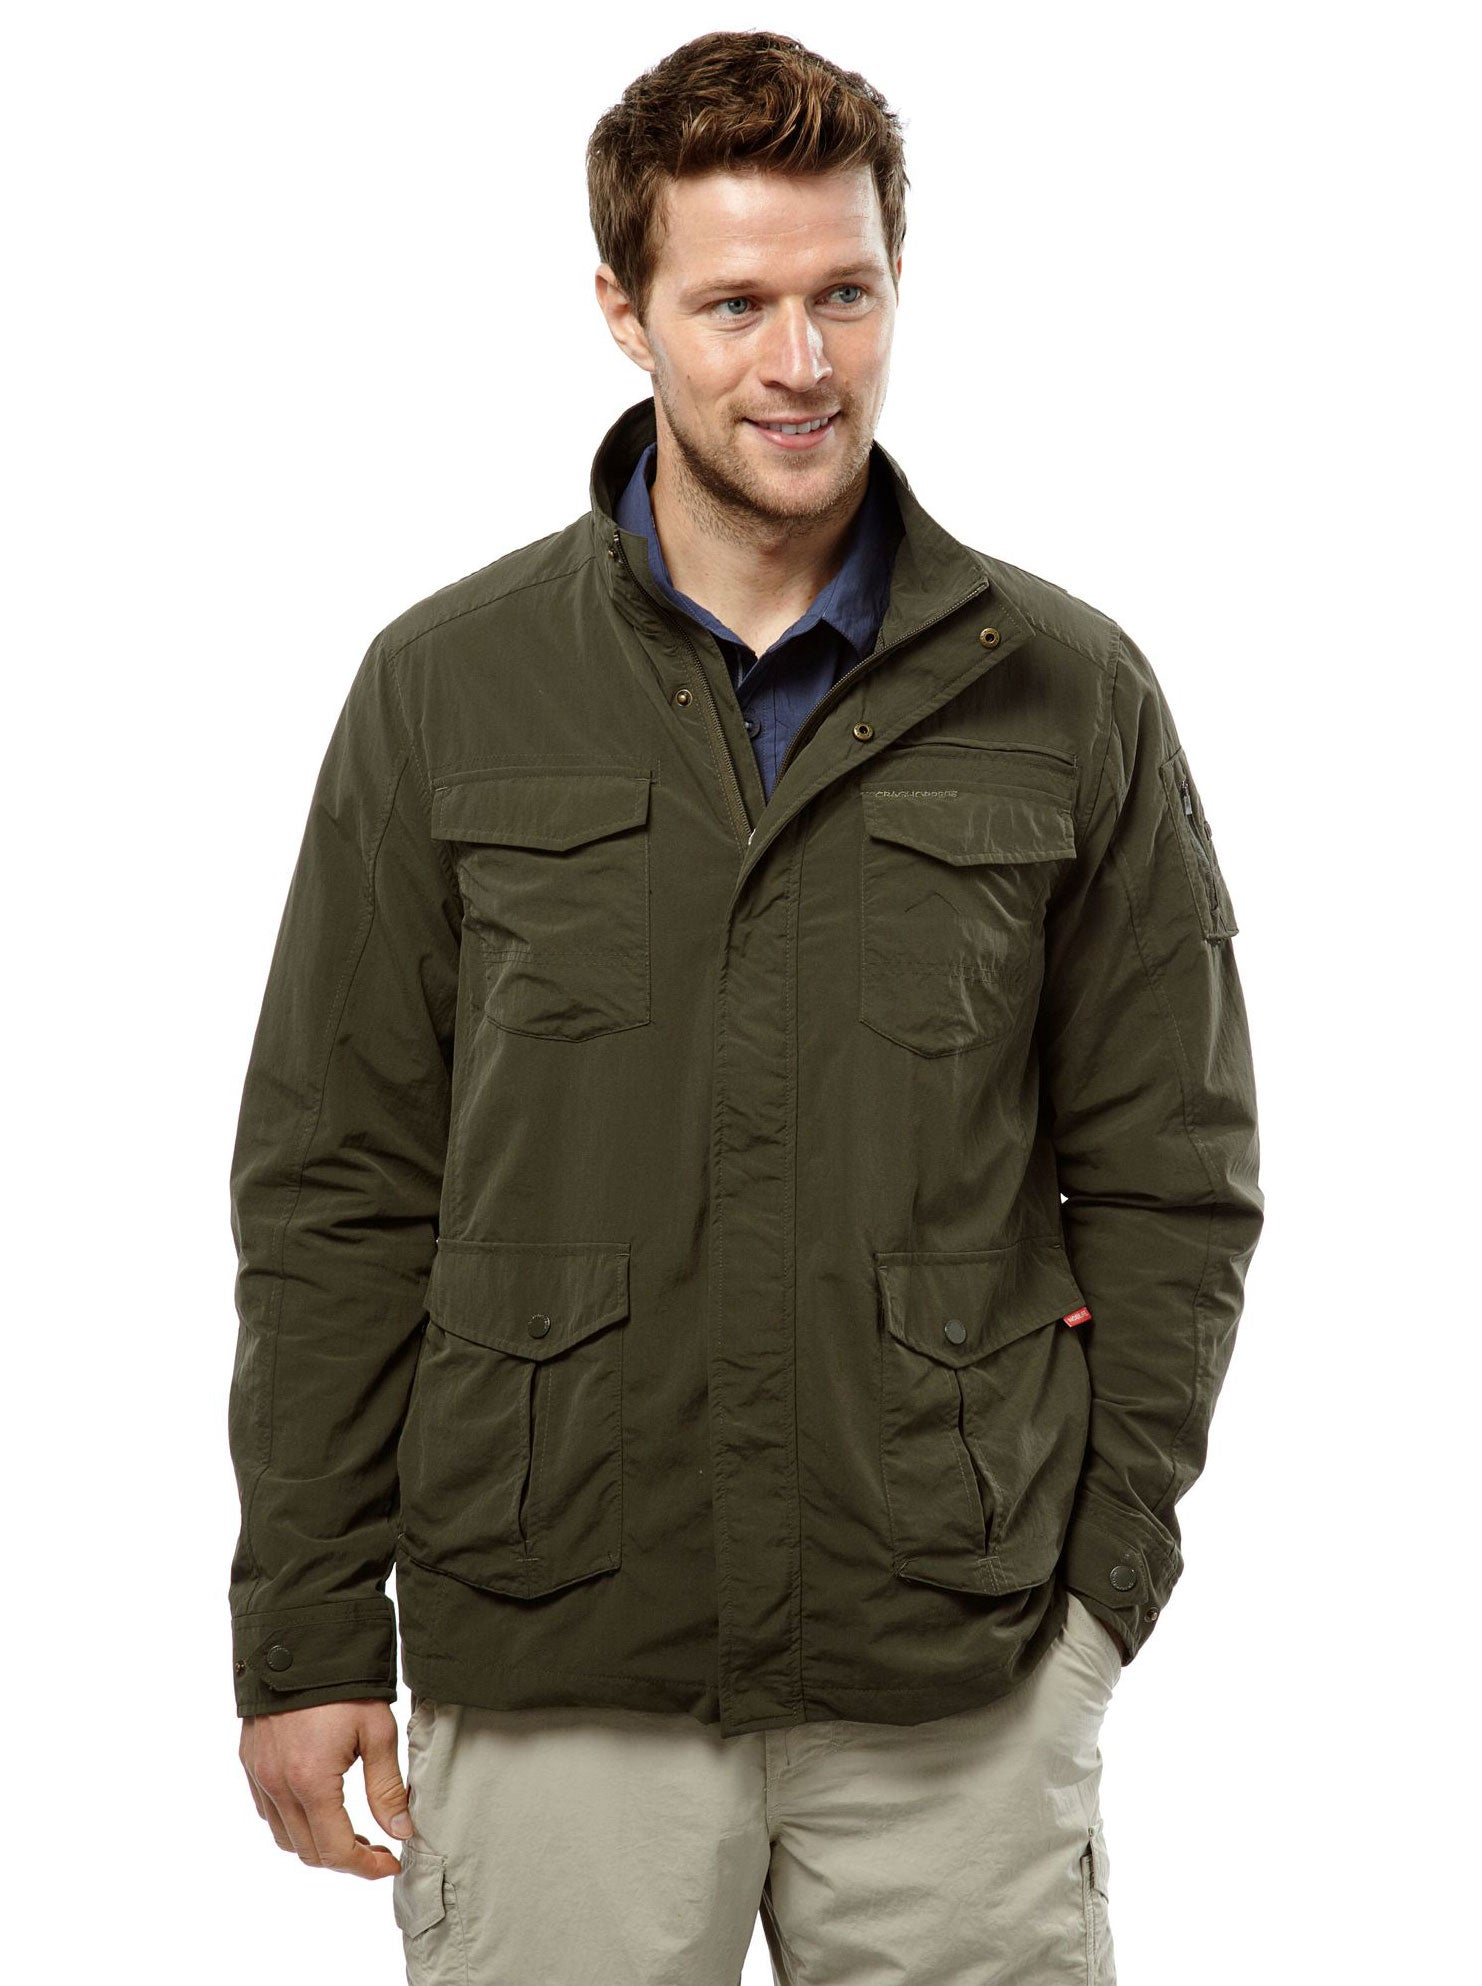 Khaki Adventure I Multi-pocket Travel Jacket by Craghoppers